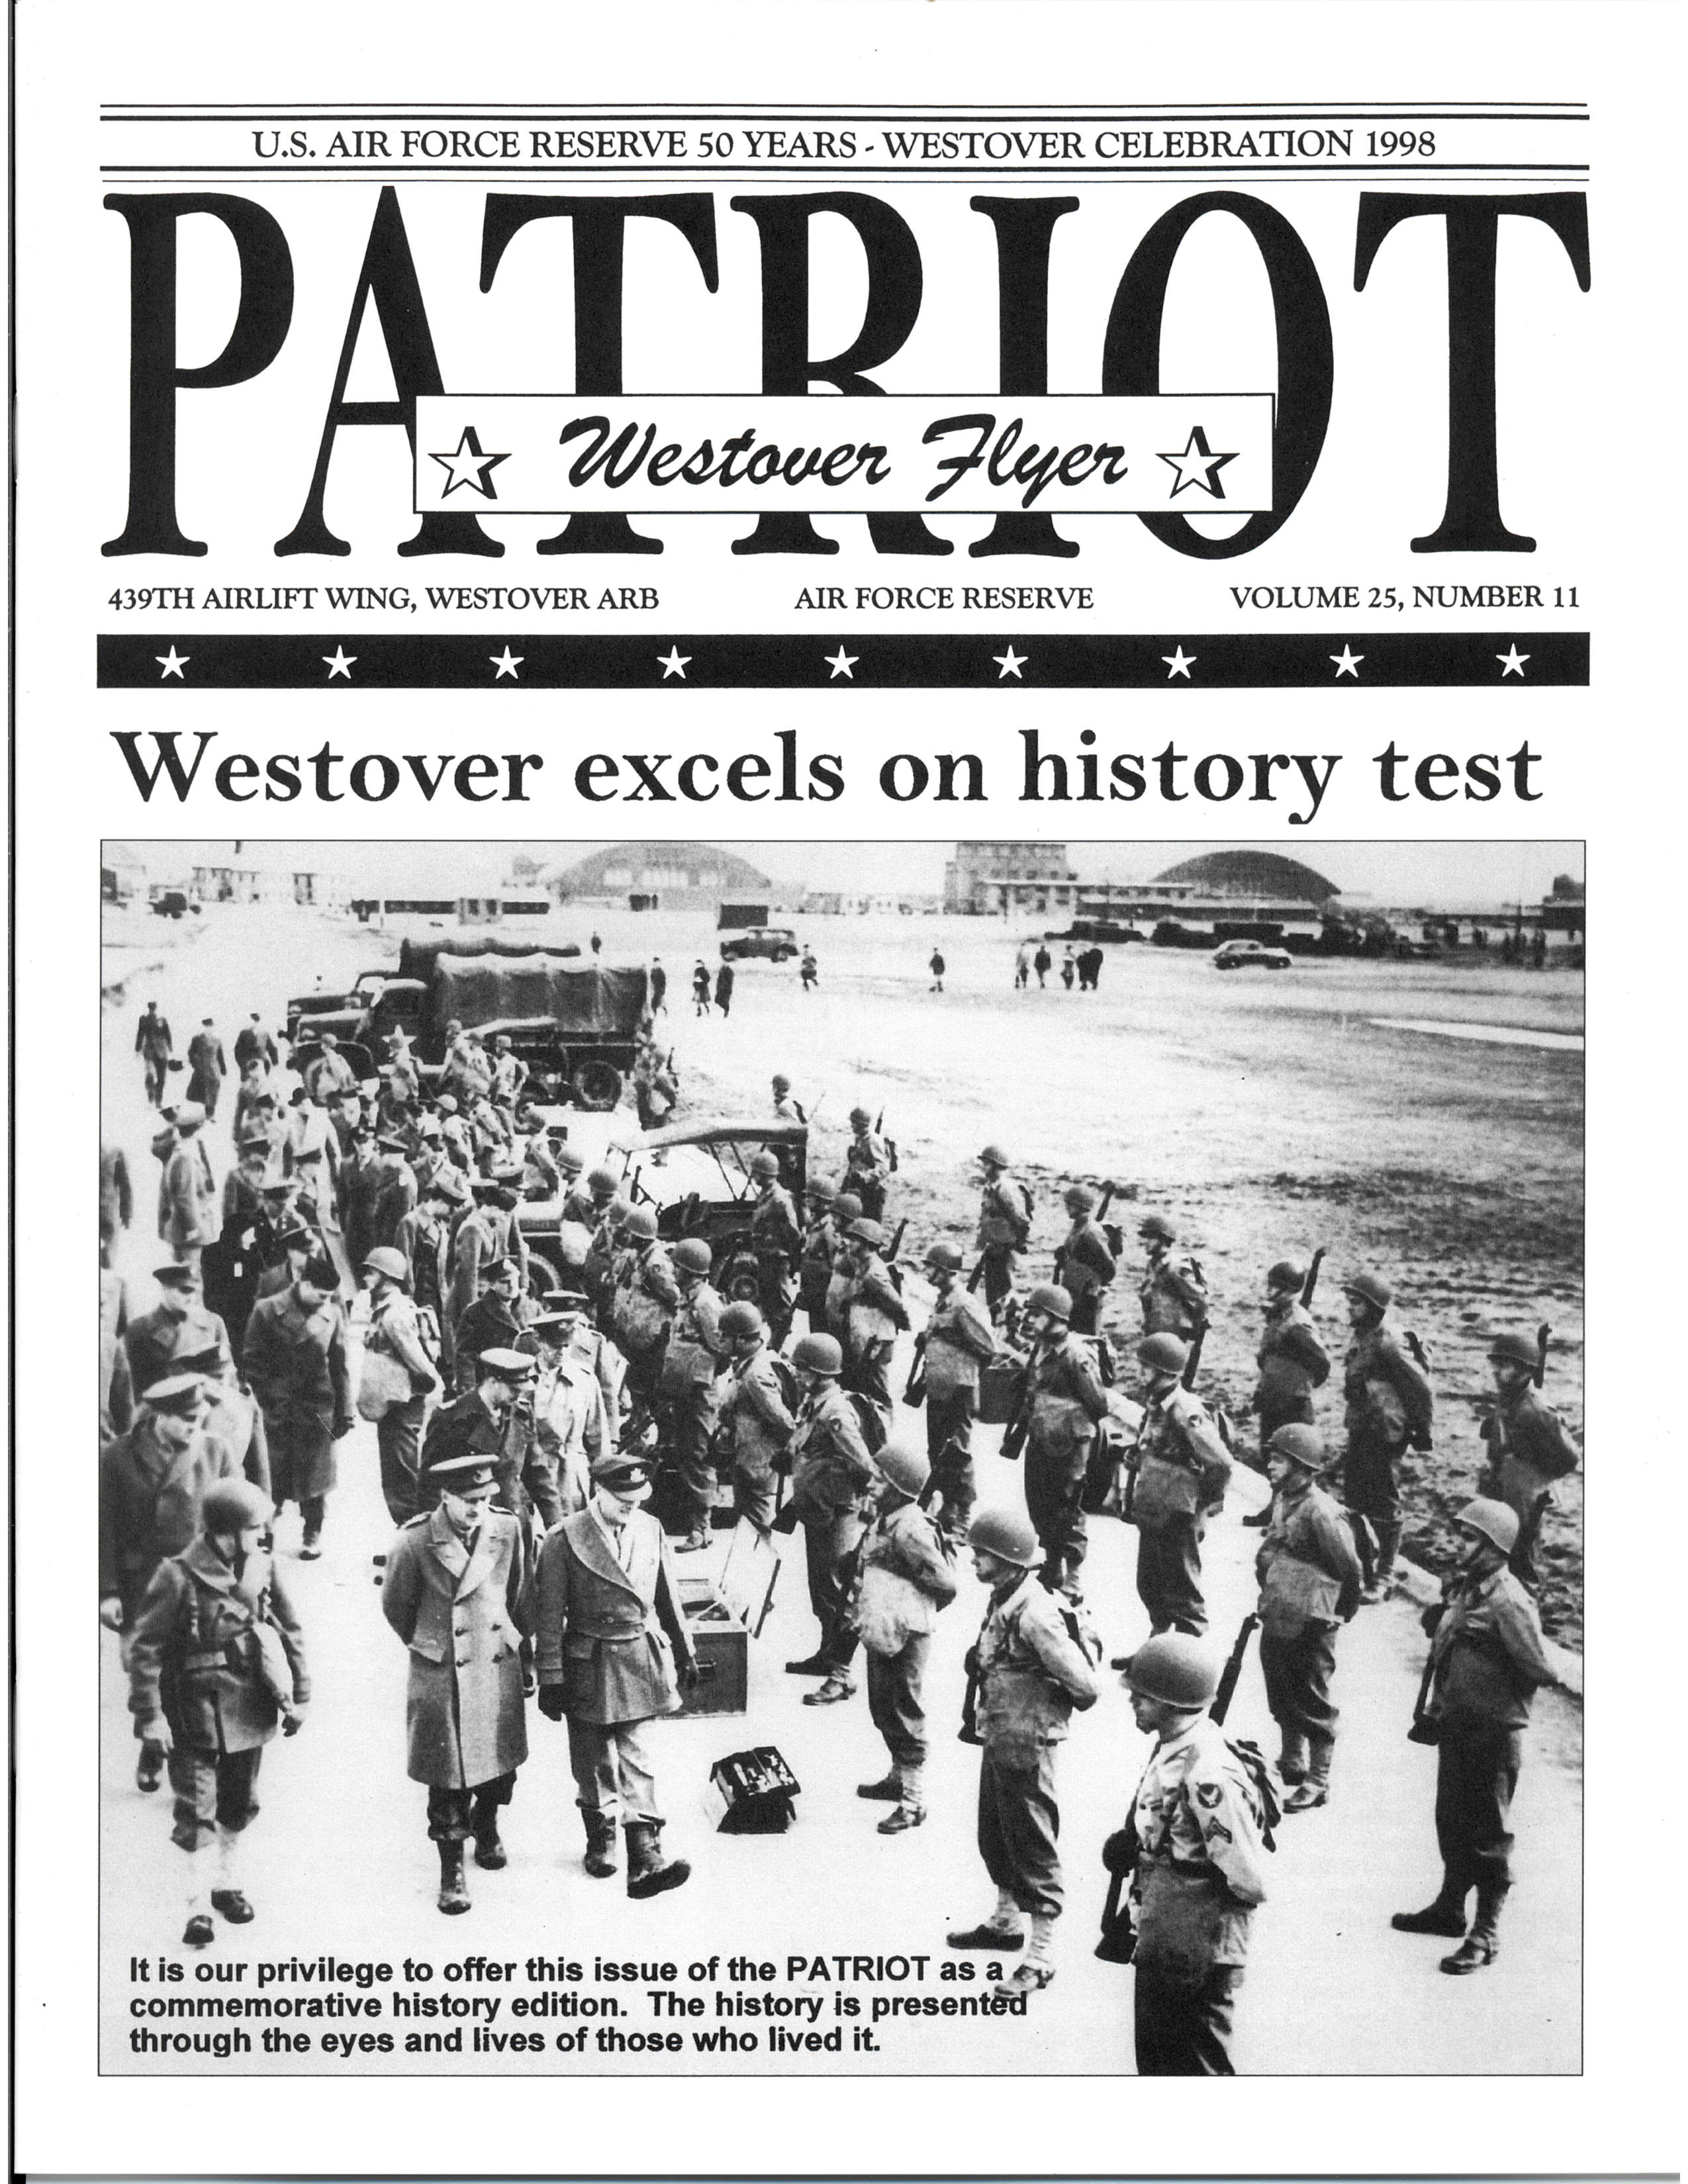 Historical 50 years Patriot Magazine Cover